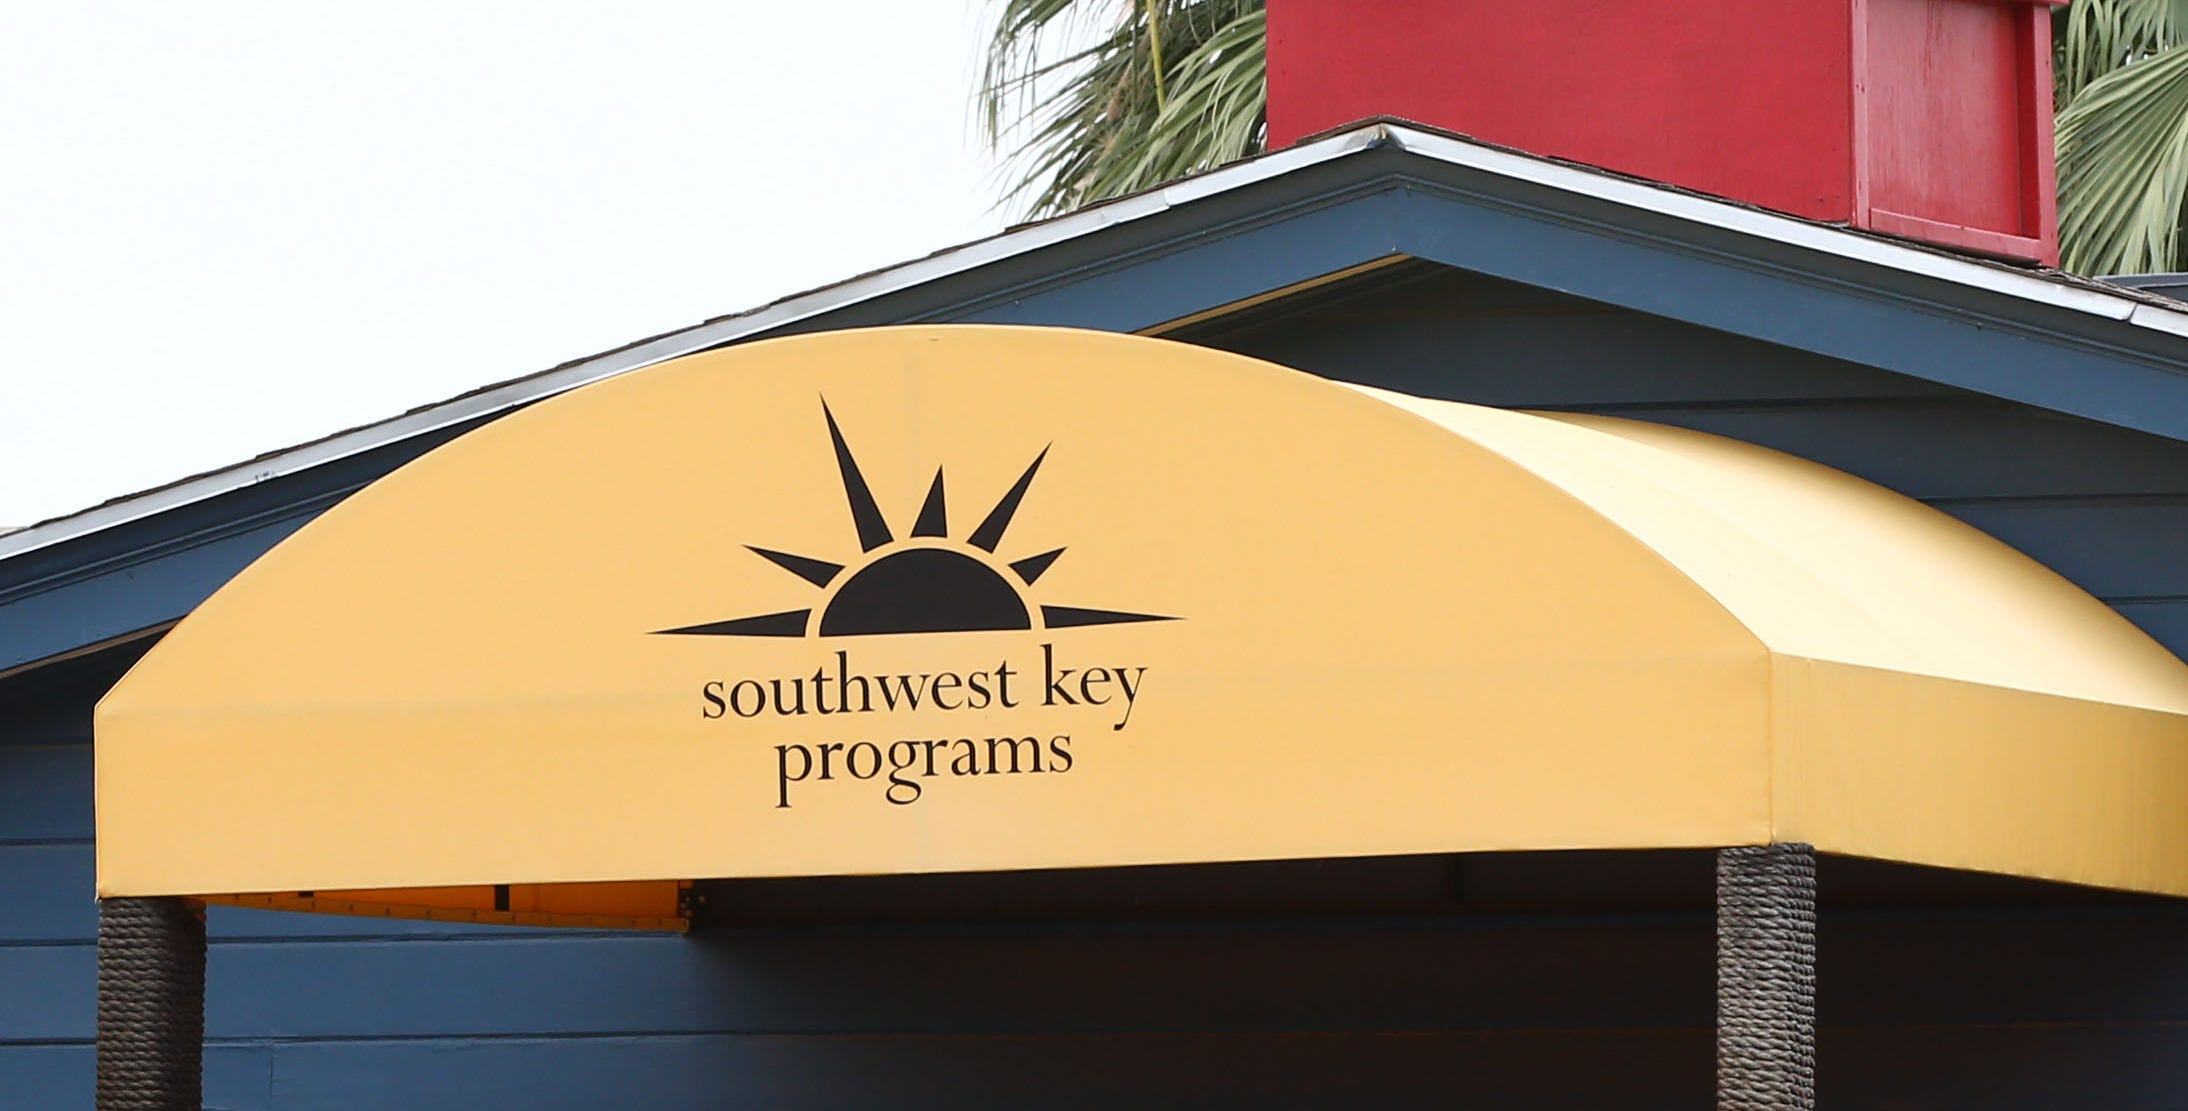 A Southwest Key Program facility near 14th Street and Thomas Road is seen July 10, 2018.